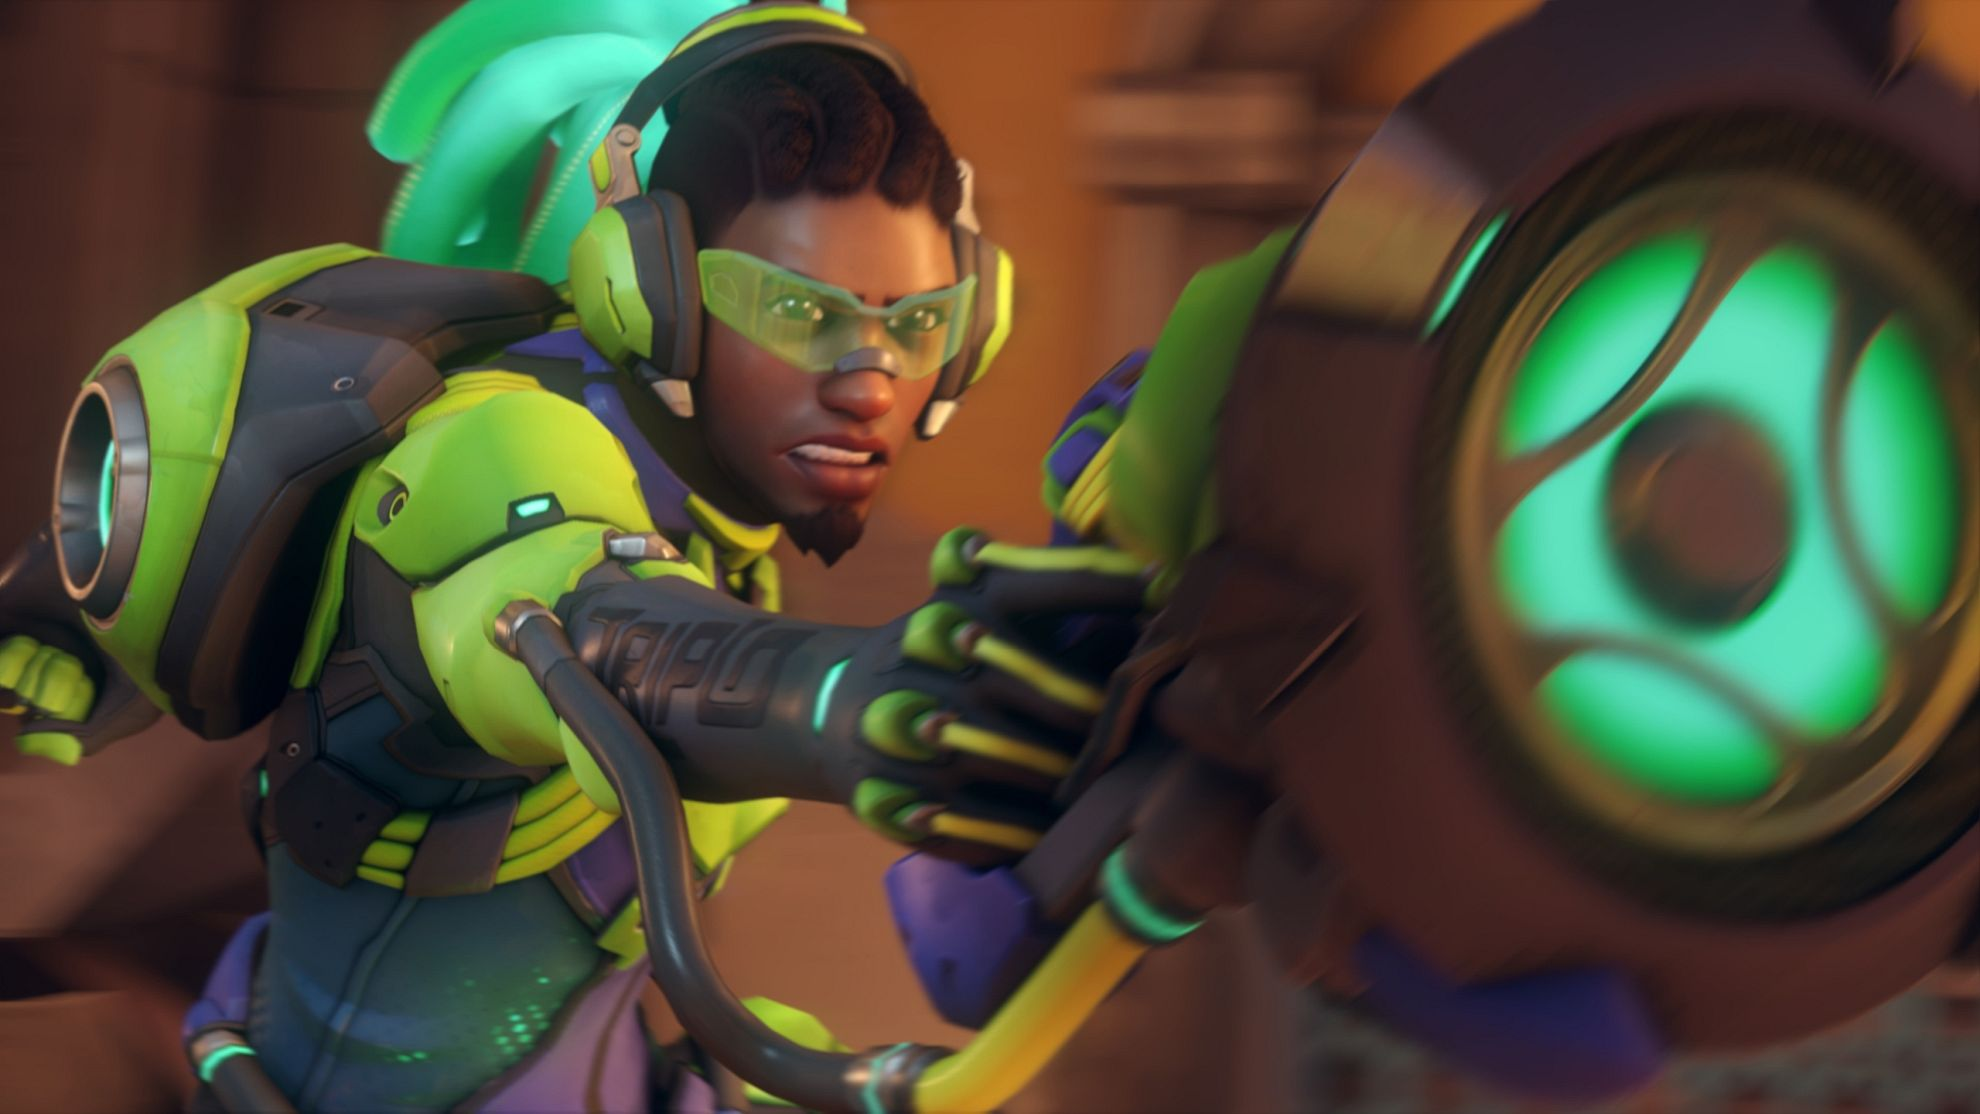 Check out this batch of Overwatch 2 screenshots